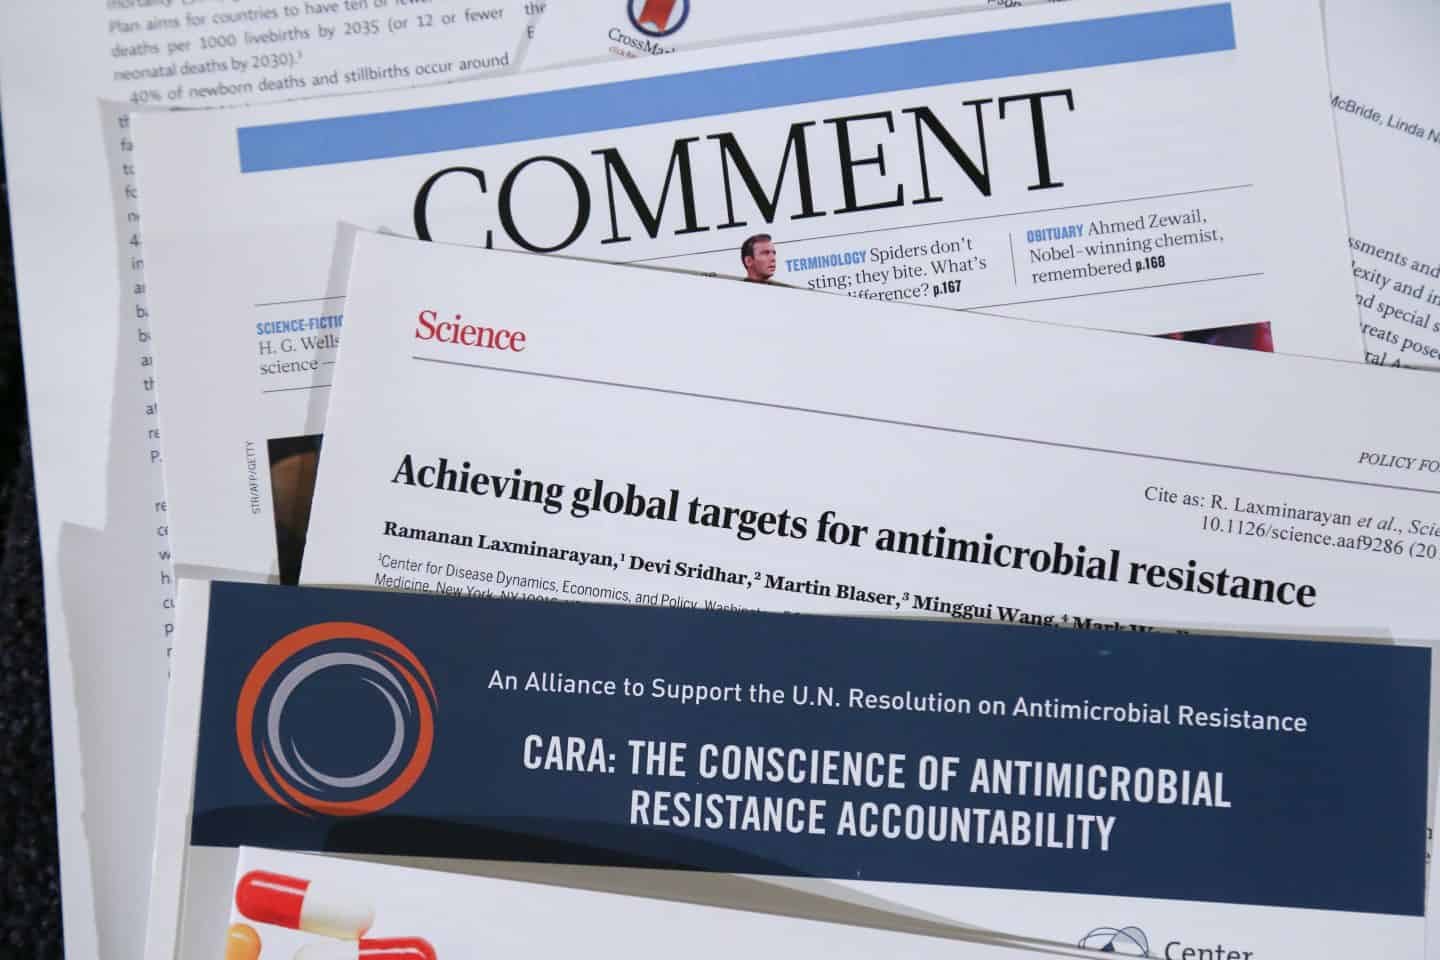 CARA: The Conscience of Antimicrobial Resistance Accountability, and the next big thing for CDDEP